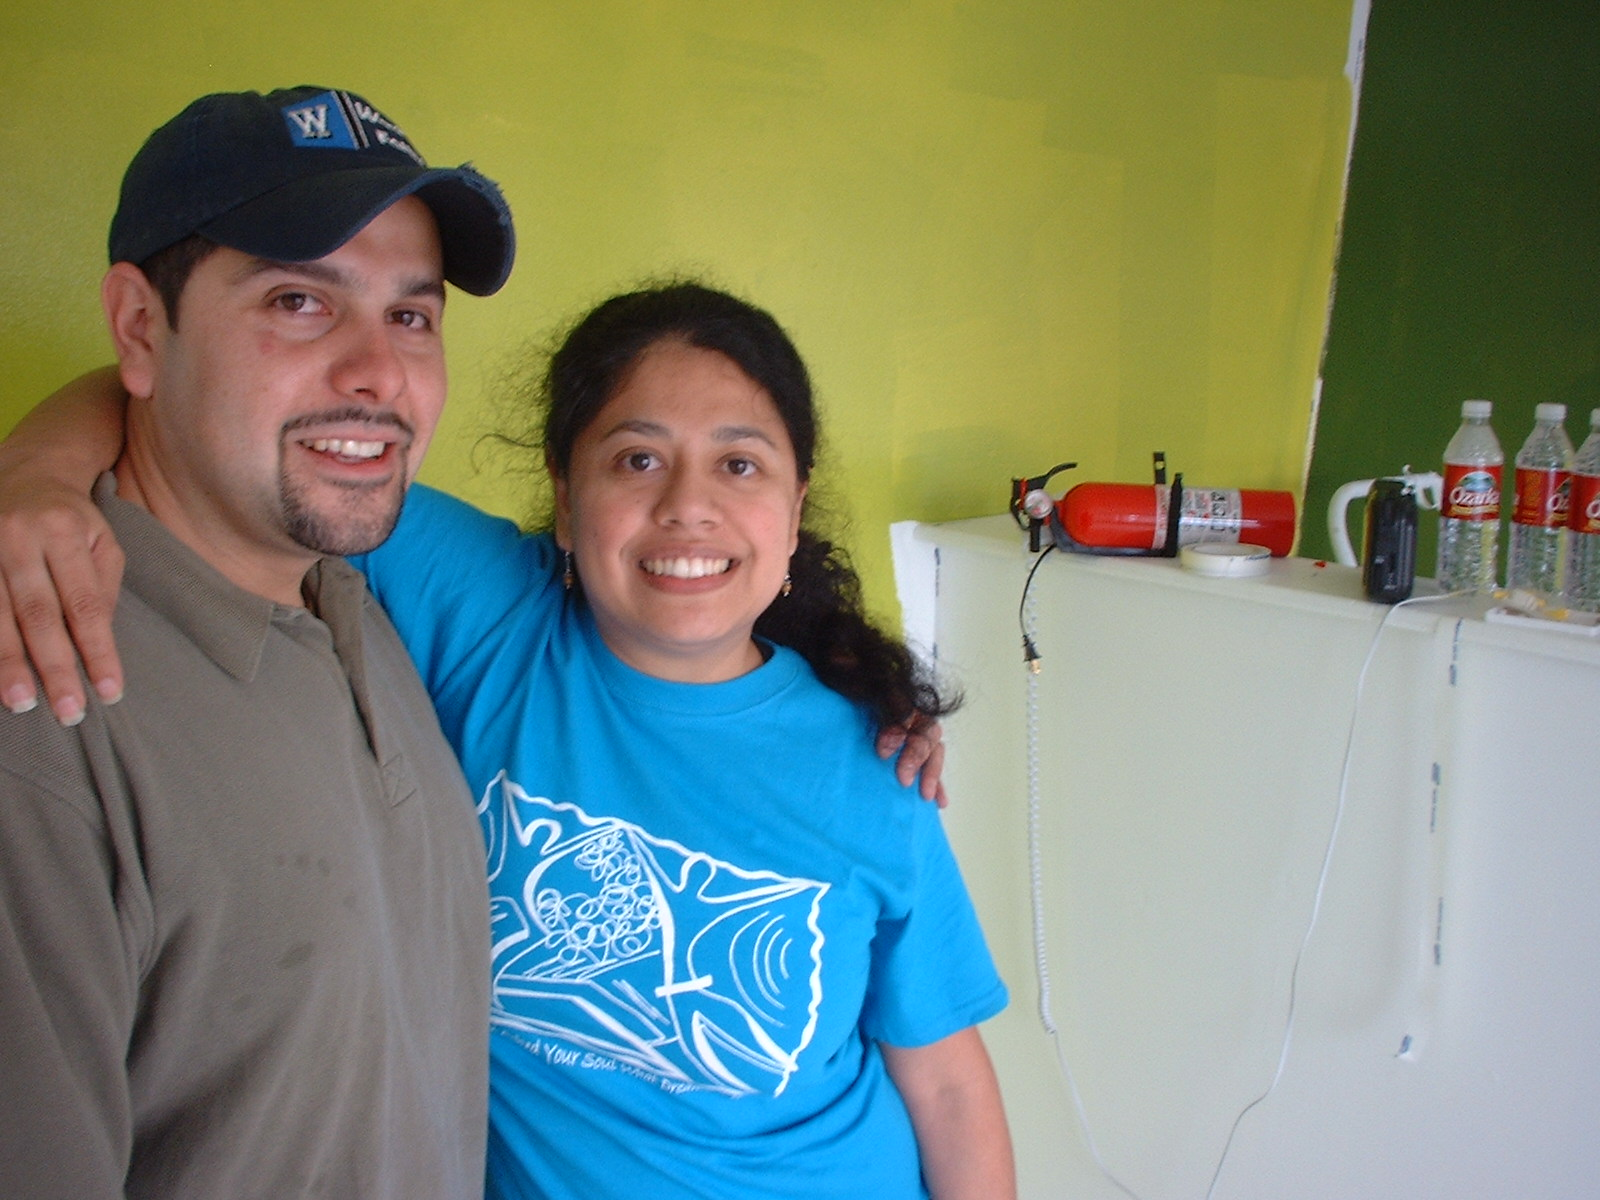 Brother and sister team Marcos Gutierrez and Sonia Gutierrez